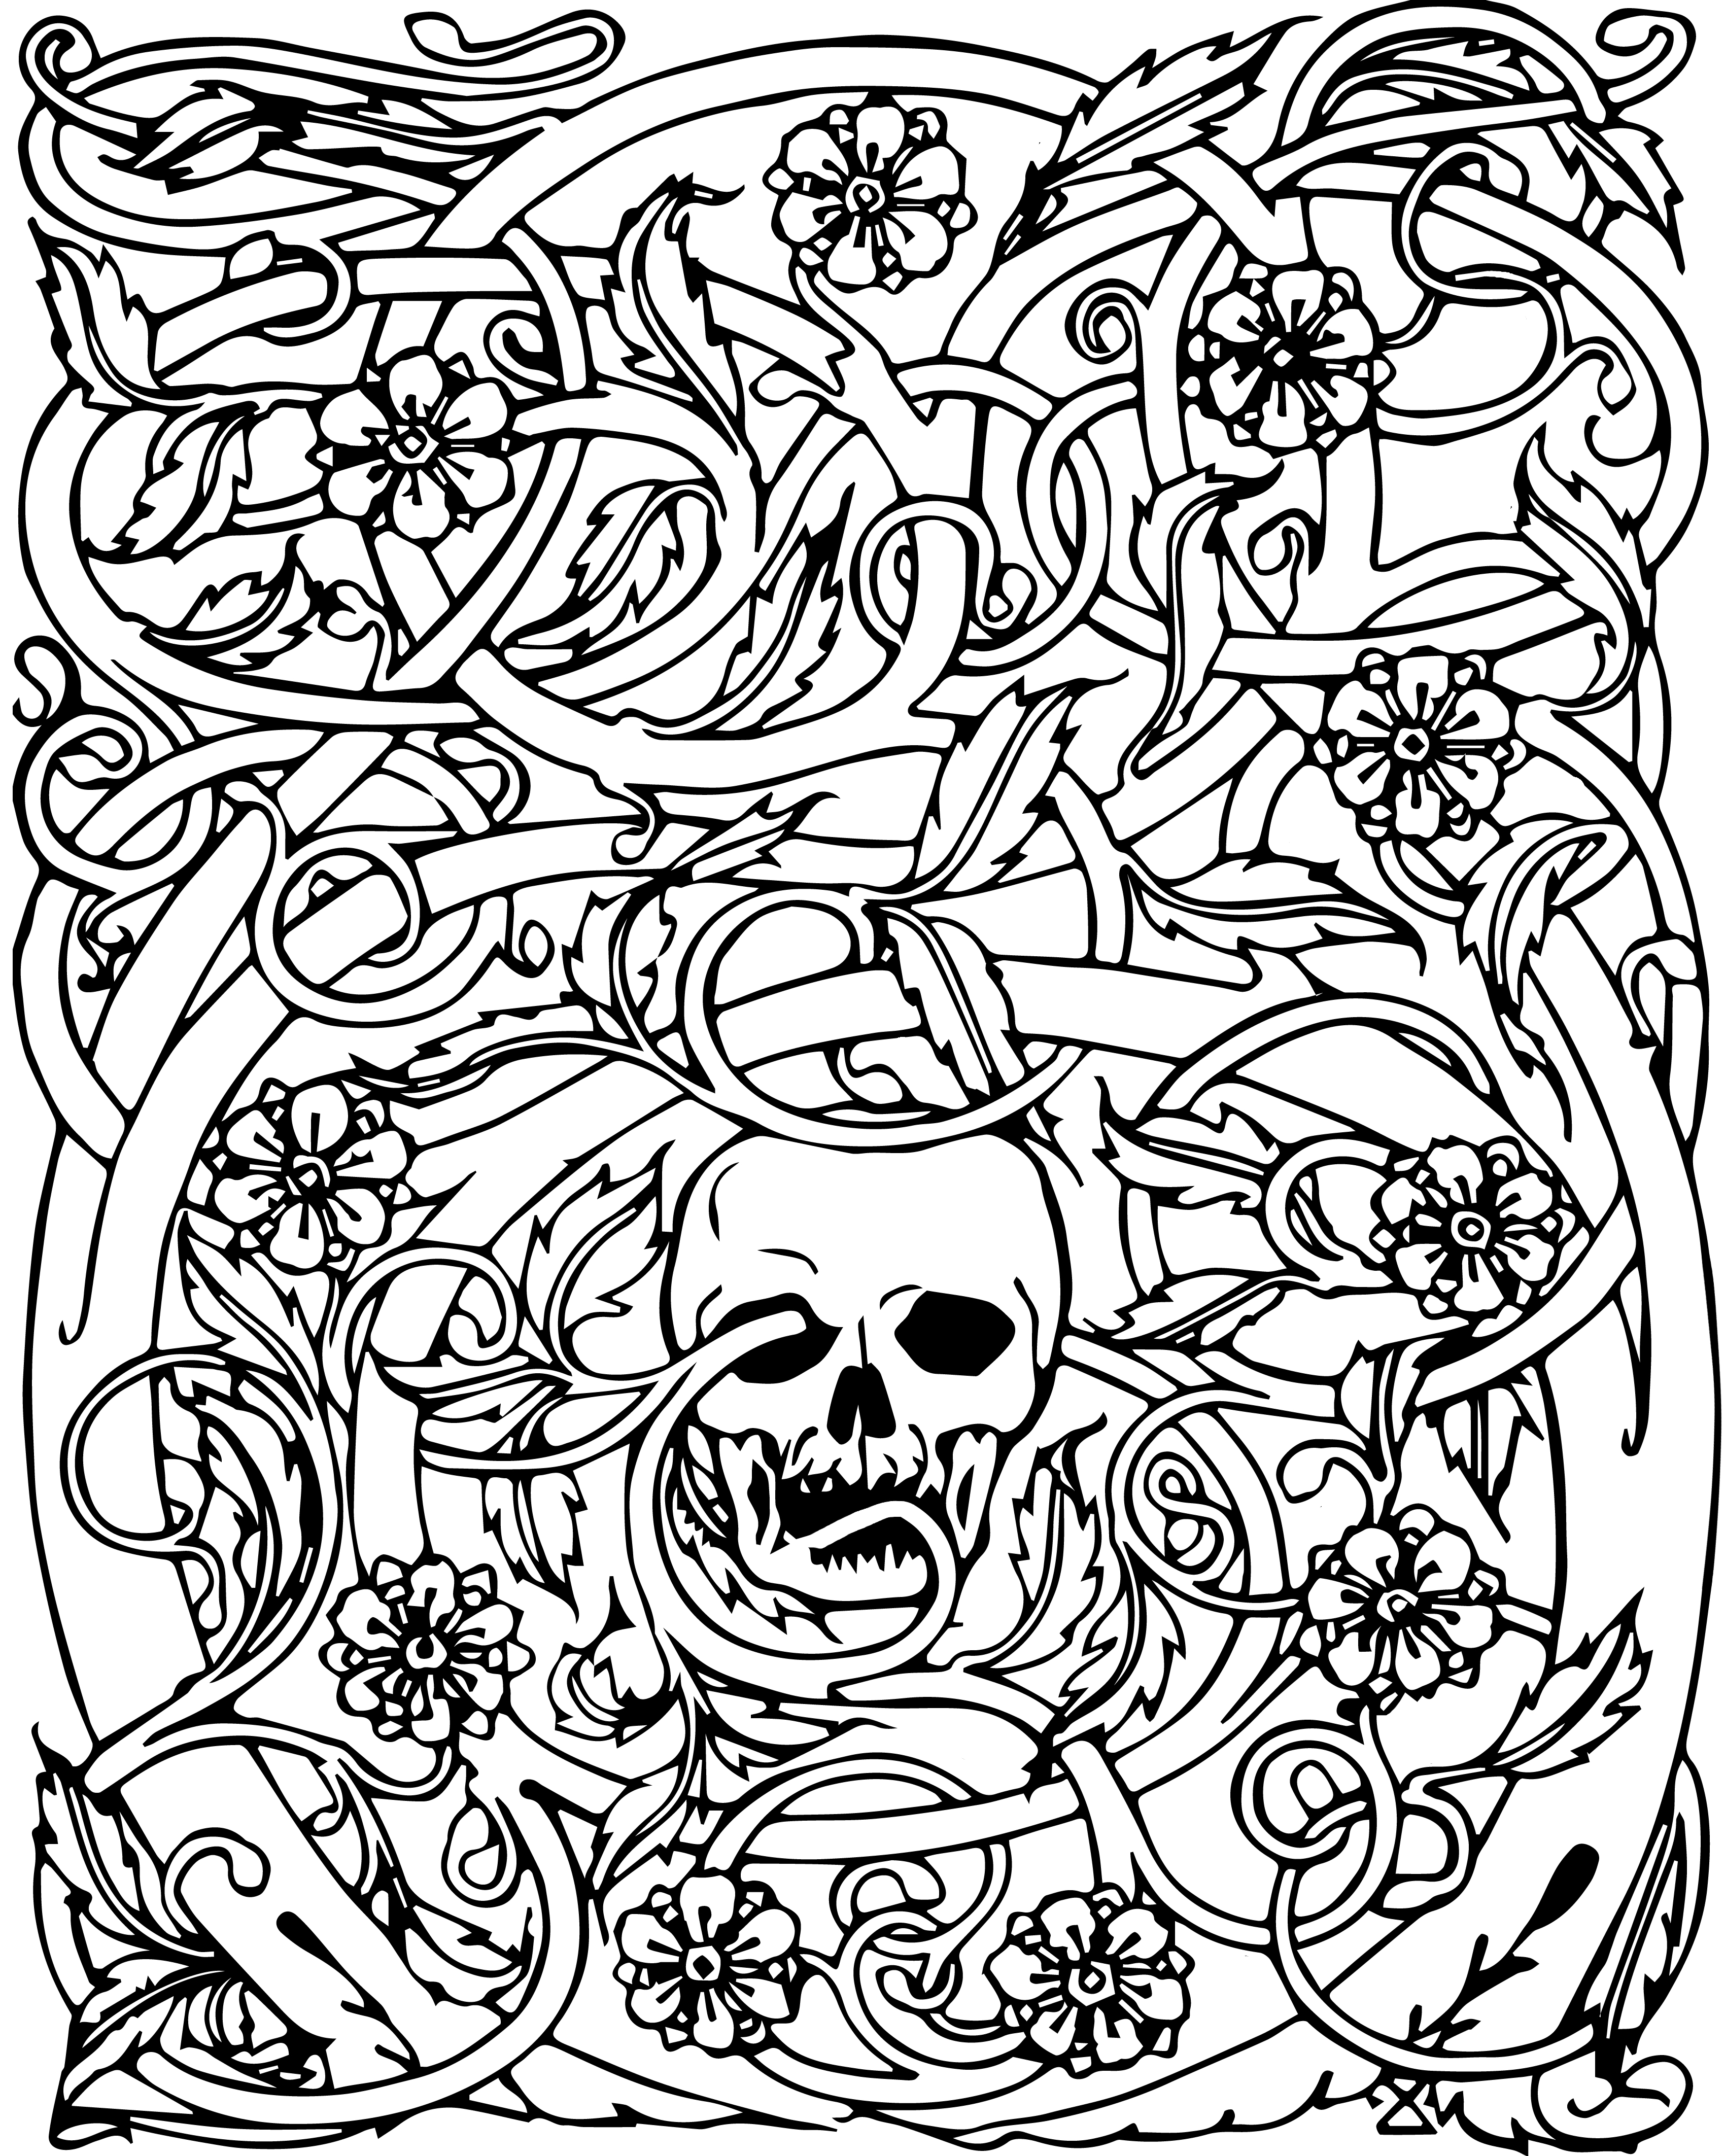 3400x4250 Free Printable Halloween Coloring Pages For Adults Sugar Skull